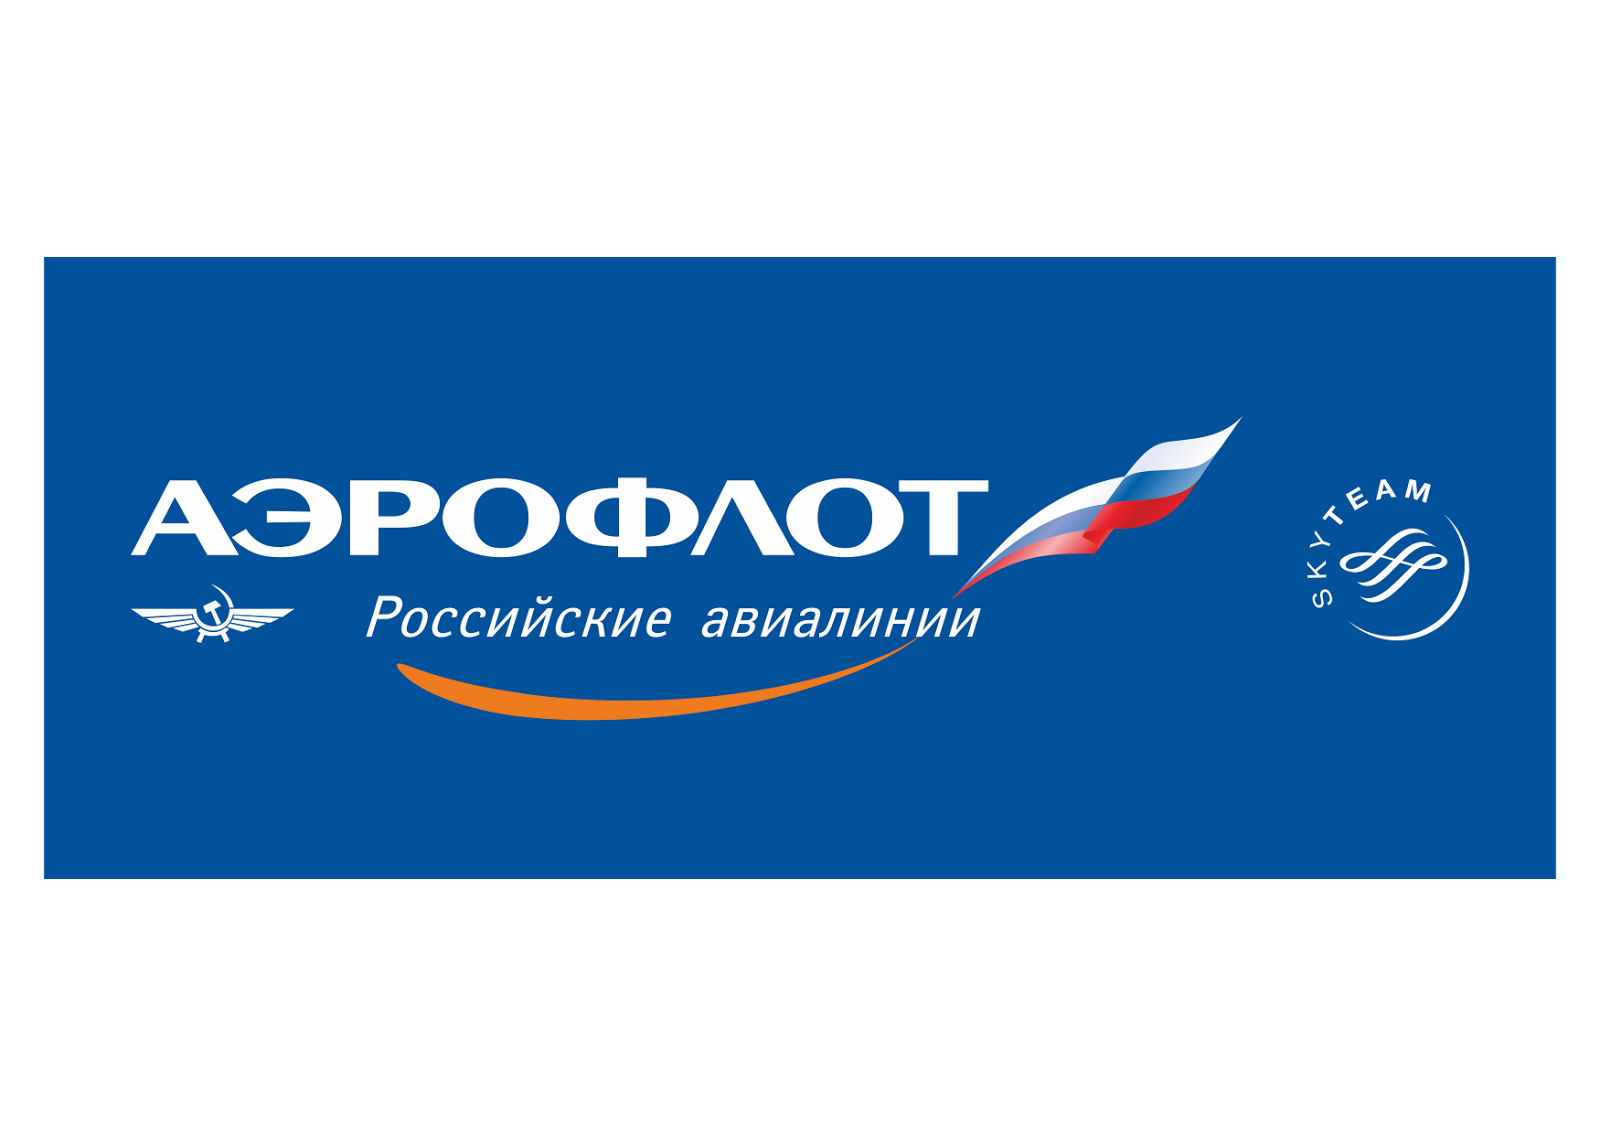 Aeroflot Russian Airlines Logo Vector - Aeroflot Russian Airlines Vector PNG